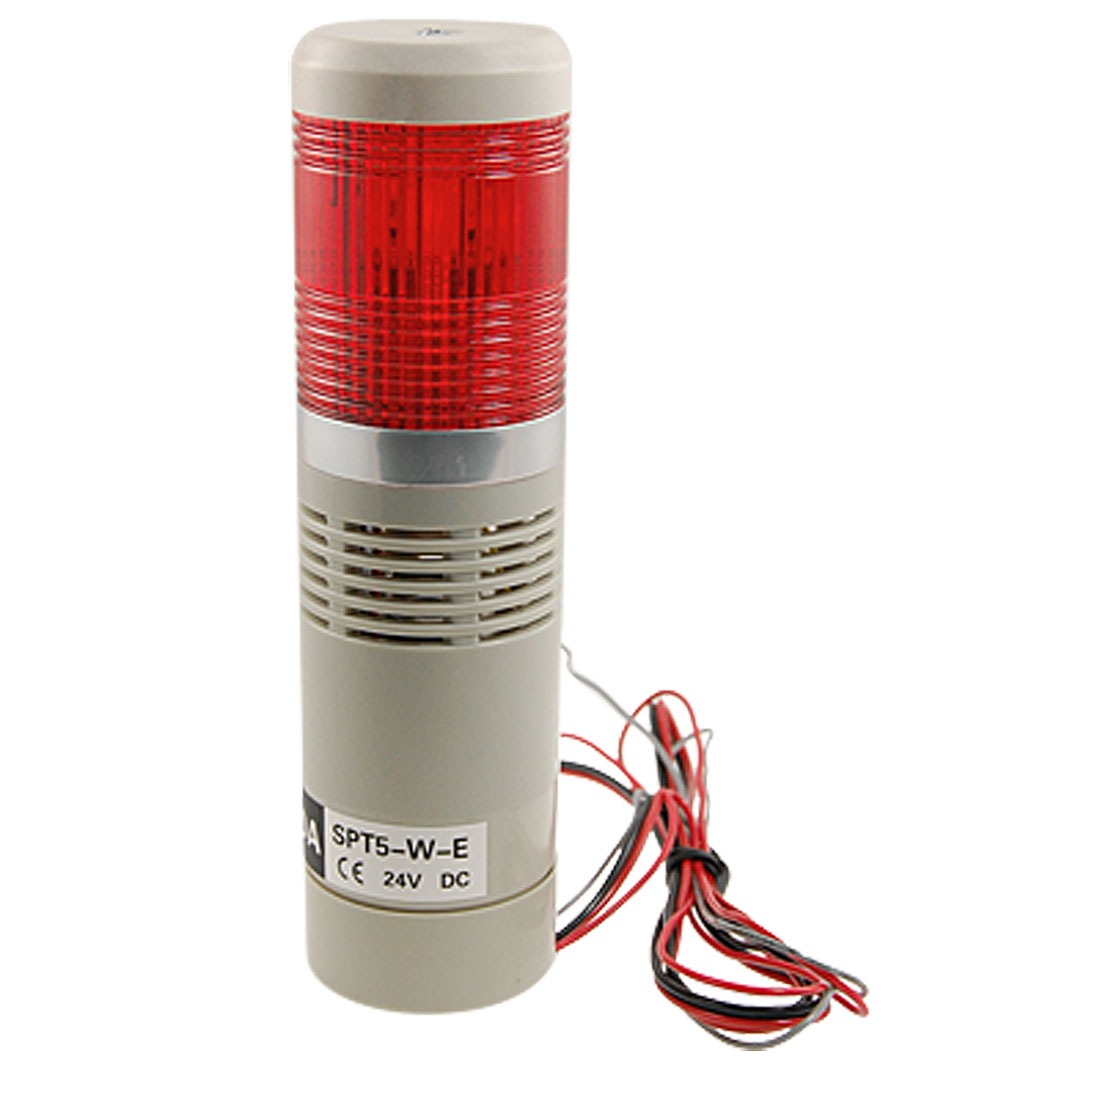 Red-Flashing-LTE-Bulb-Industrial-Tower-Signal-Alarm-Lamp-Indicator